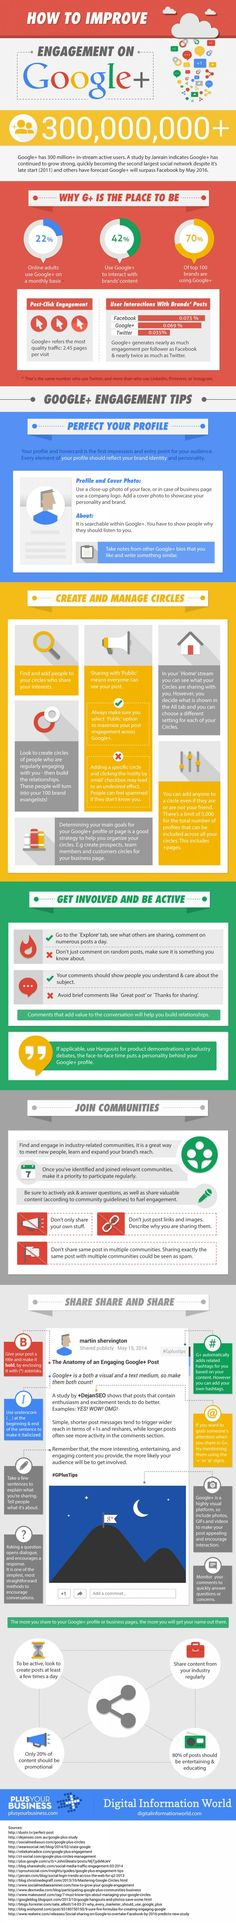 Google Plus Infographic - How To Improve Engagement On Google+